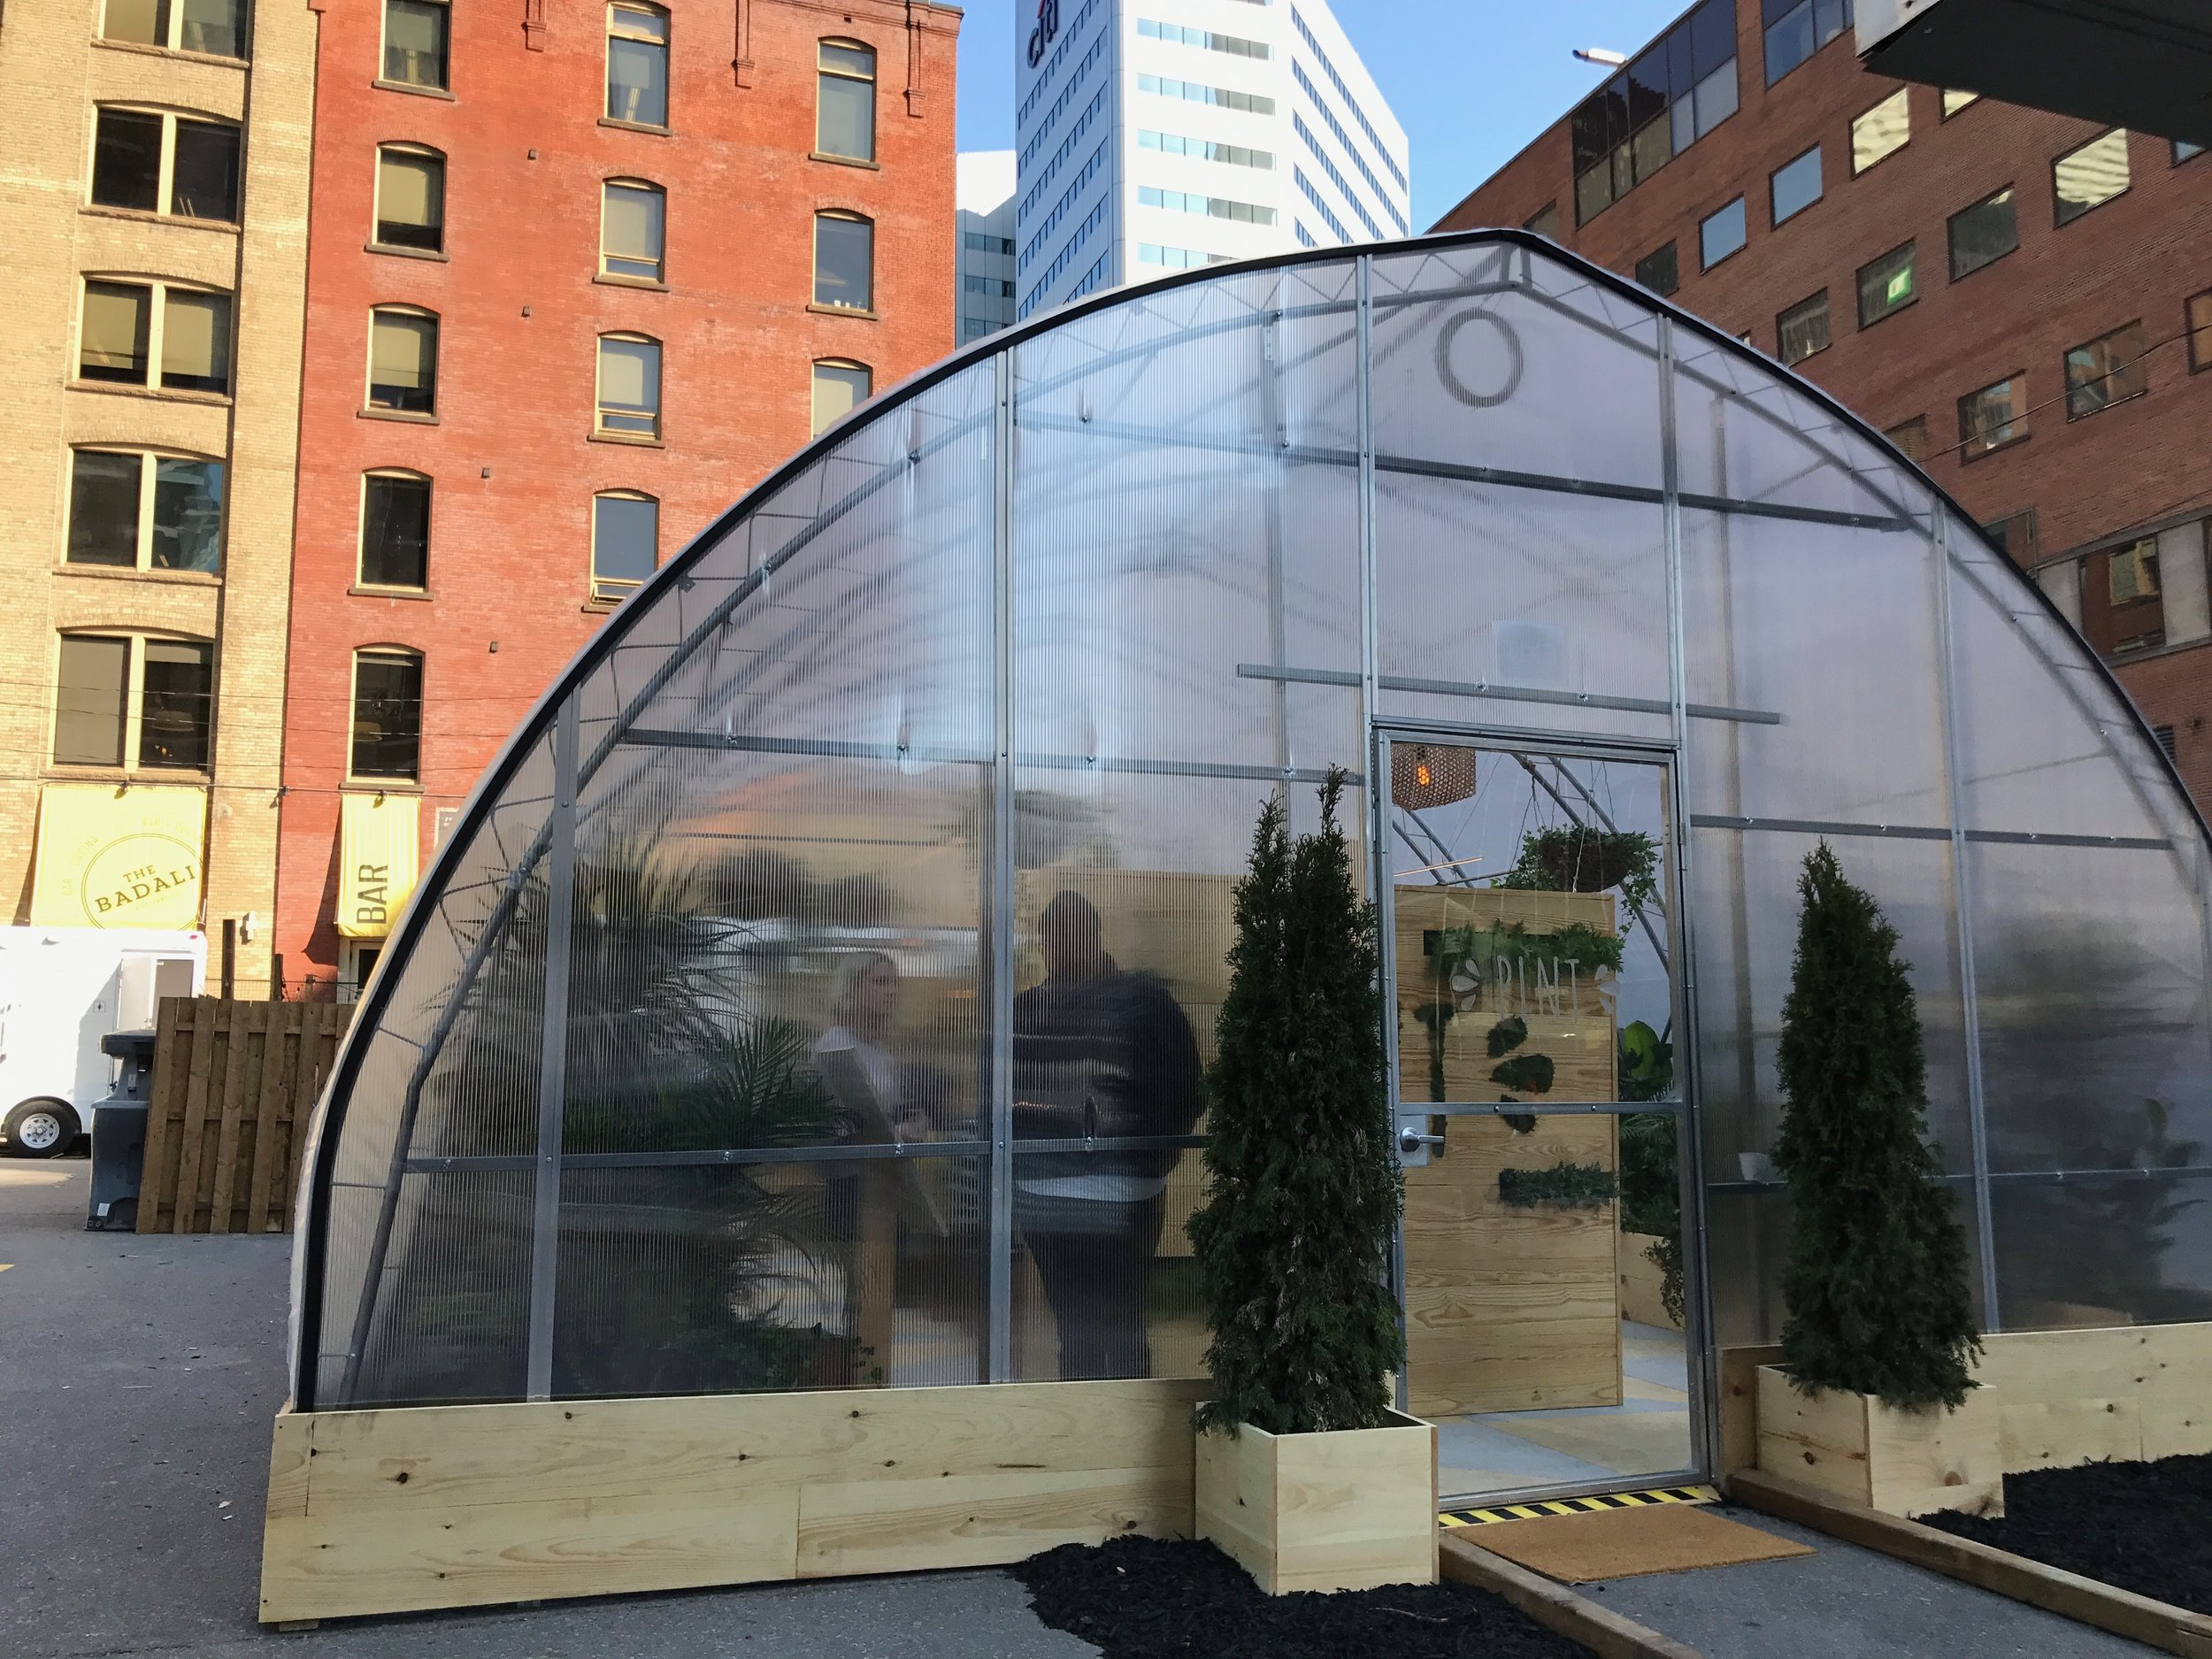 The pop-up greenhouse at Front and Simcoe